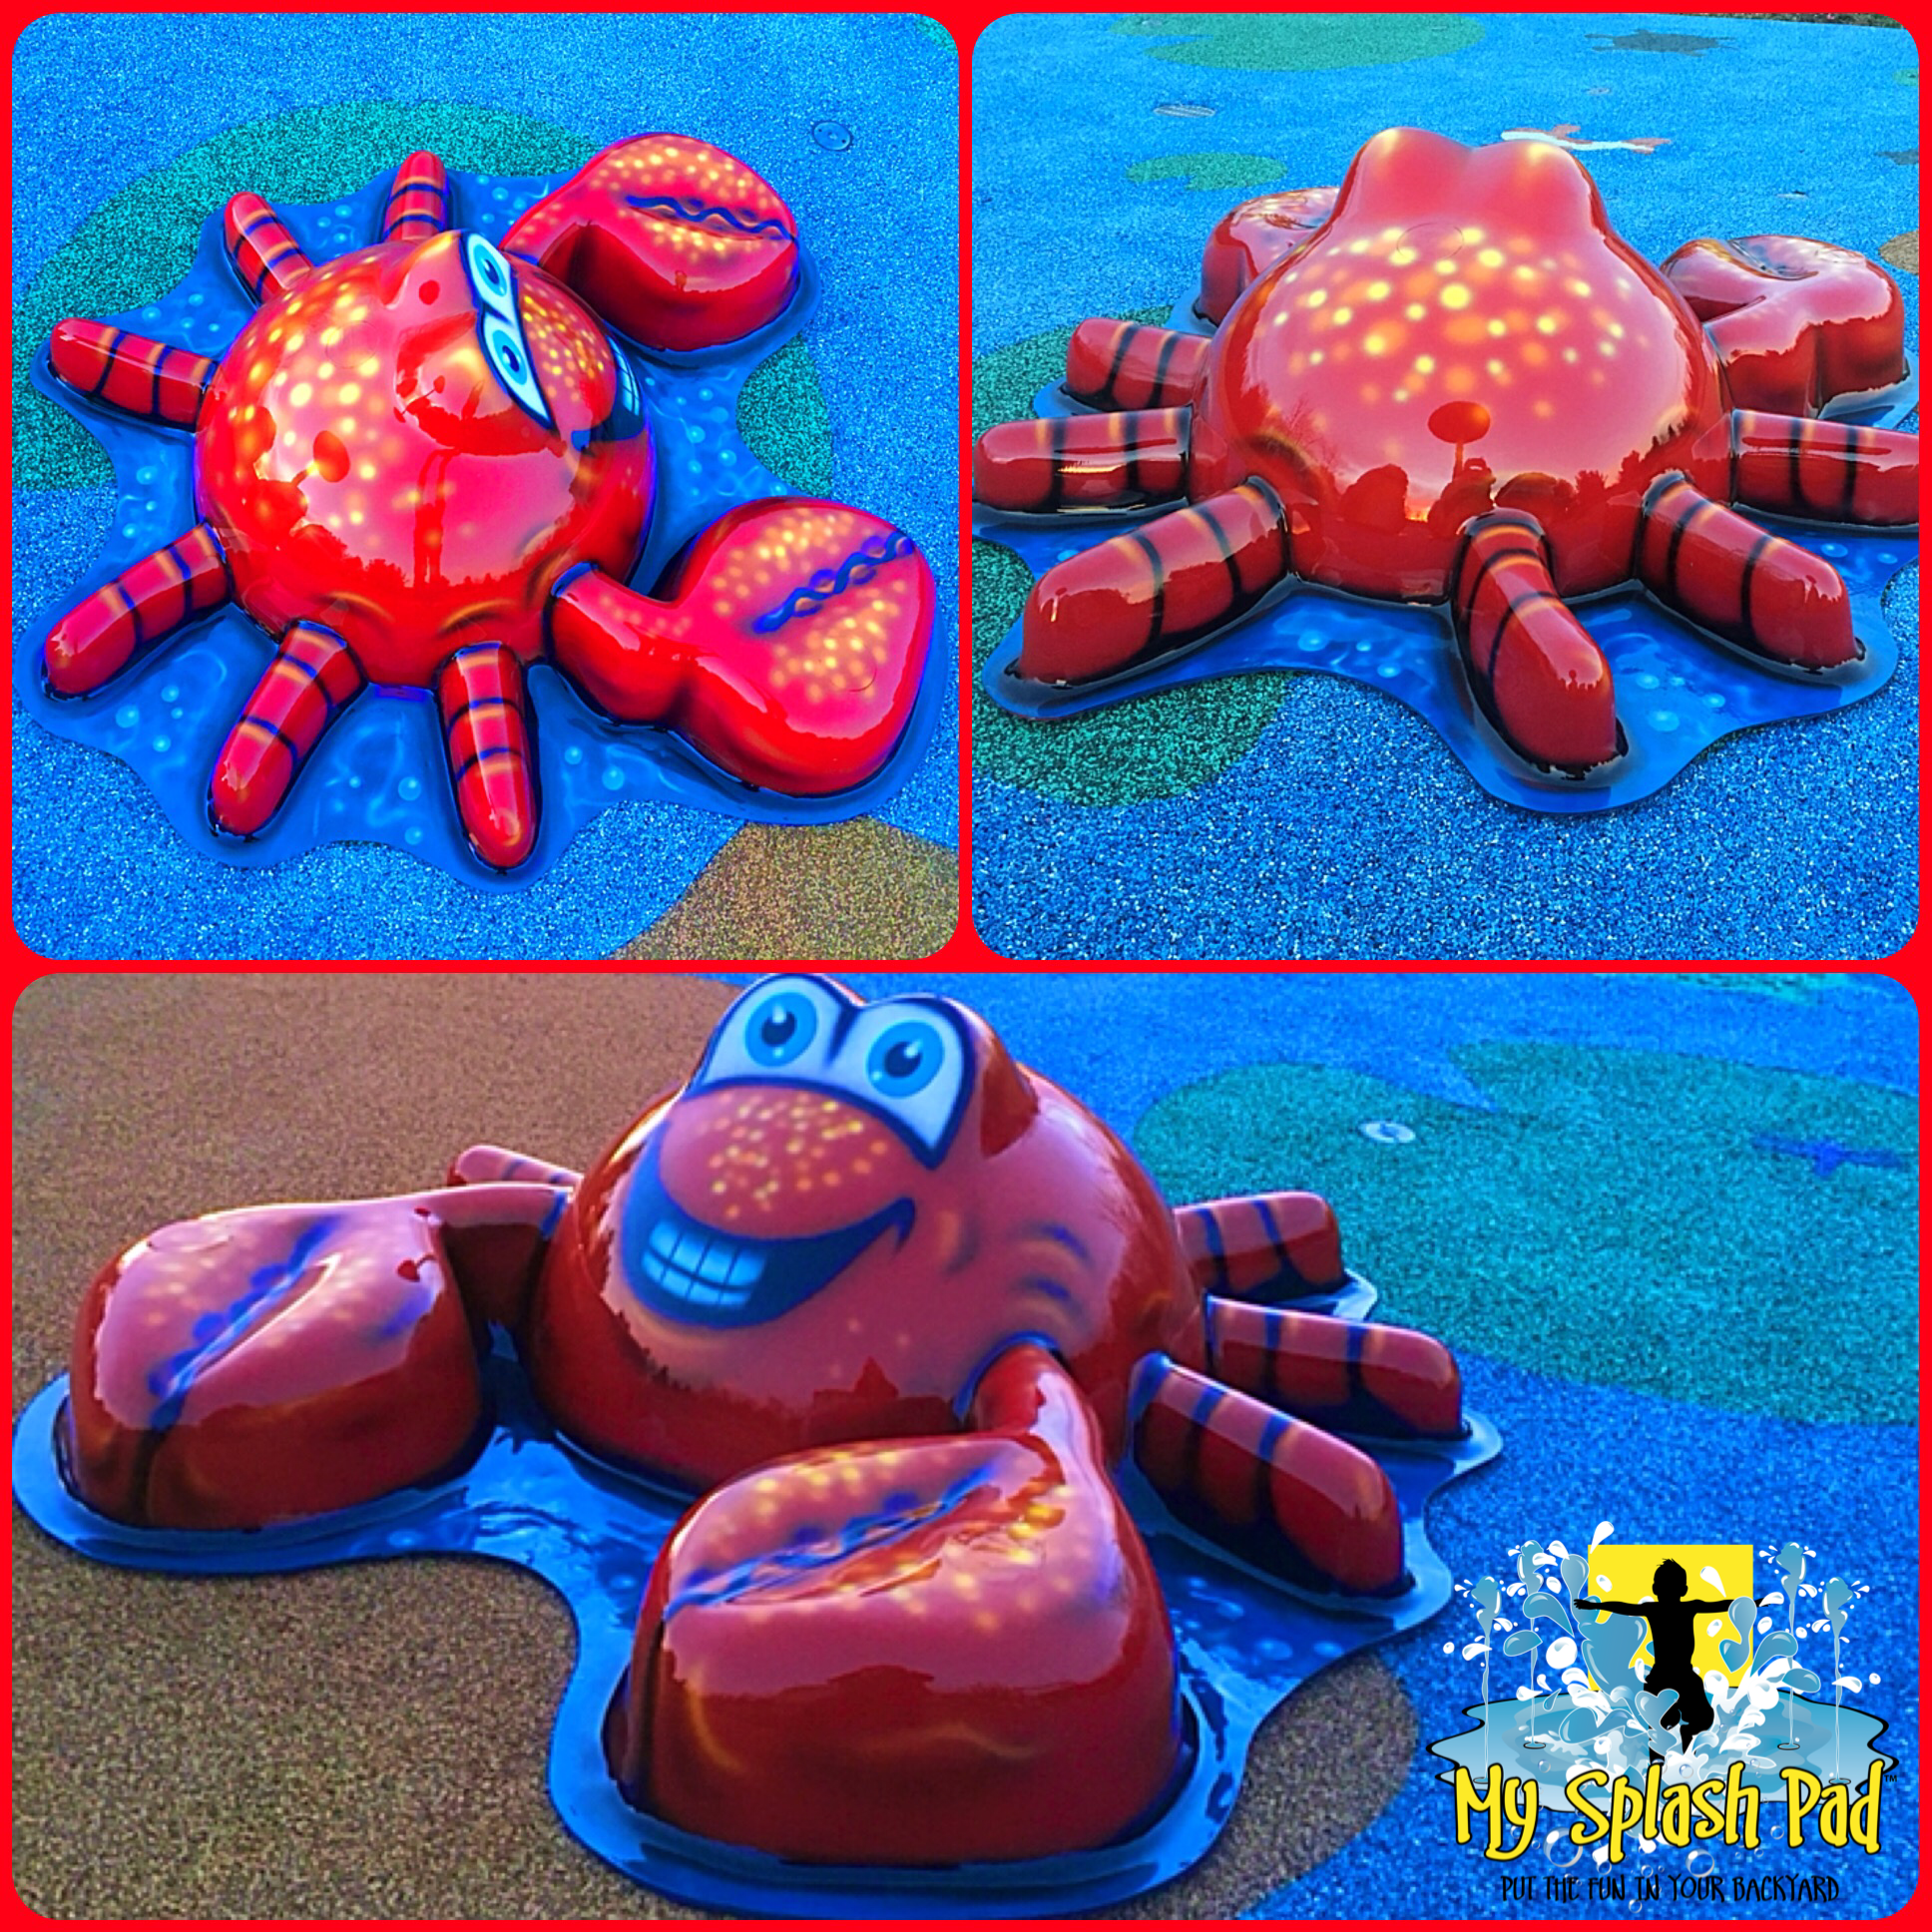 new splash pad feature our new fun crab water play feature for